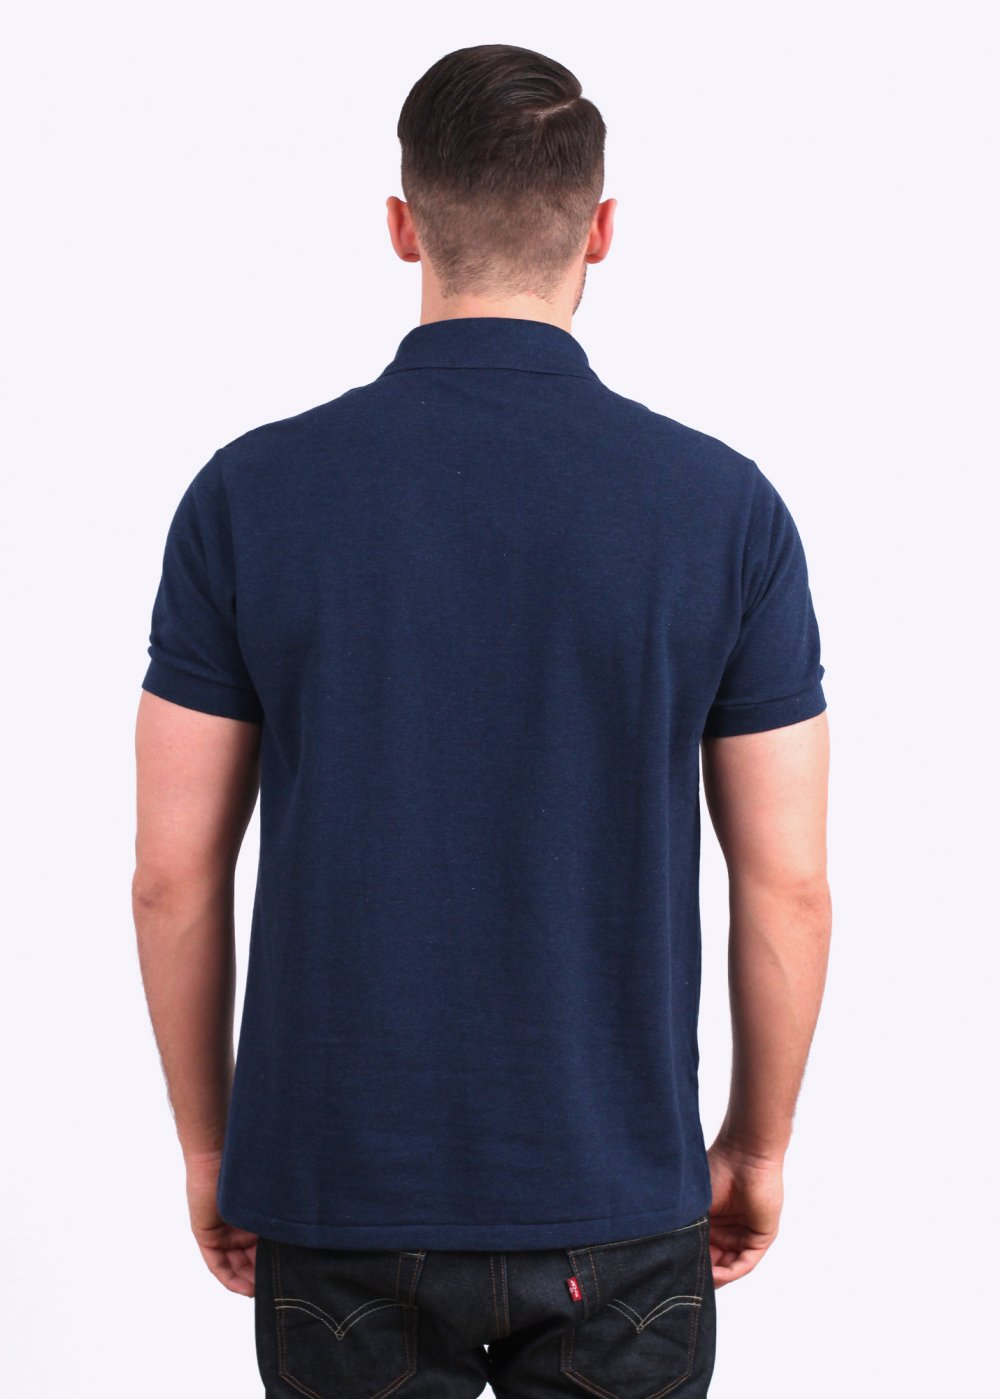 polo shirts lacoste lacoste short sleeve polo shirt midnight. Black Bedroom Furniture Sets. Home Design Ideas